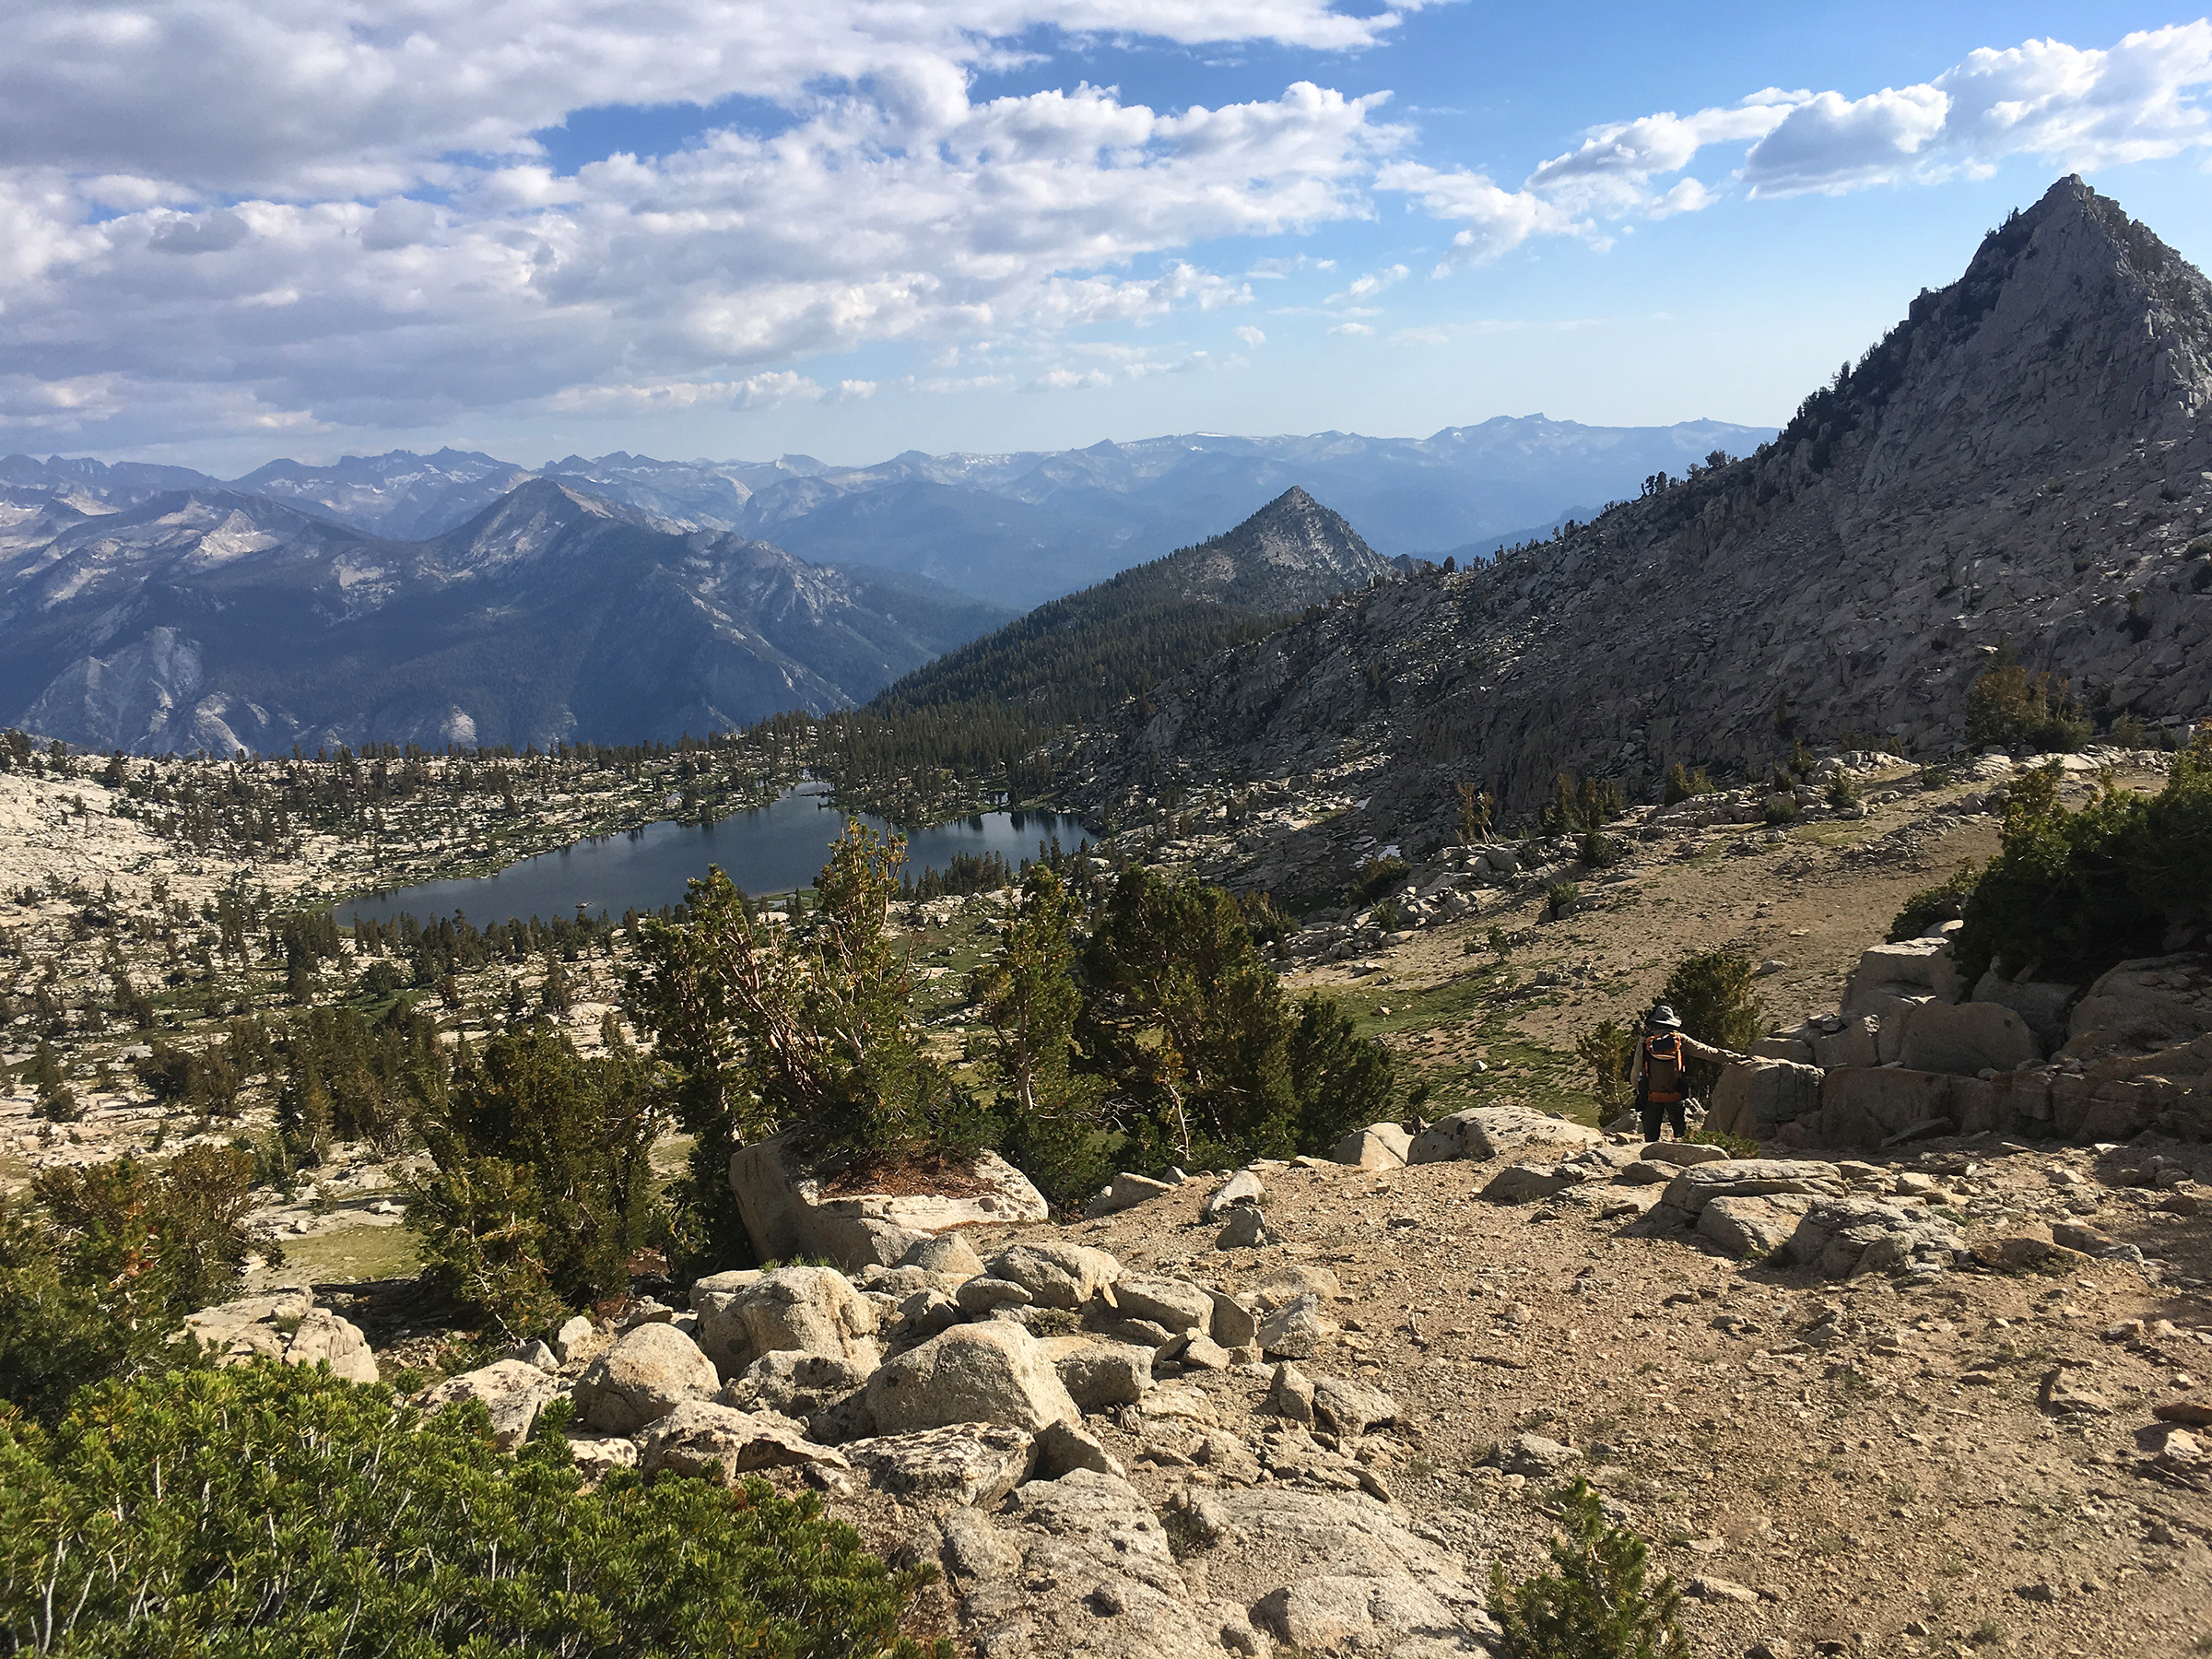 trailname-backstroke-sierra-high-route-2017_1120.jpg